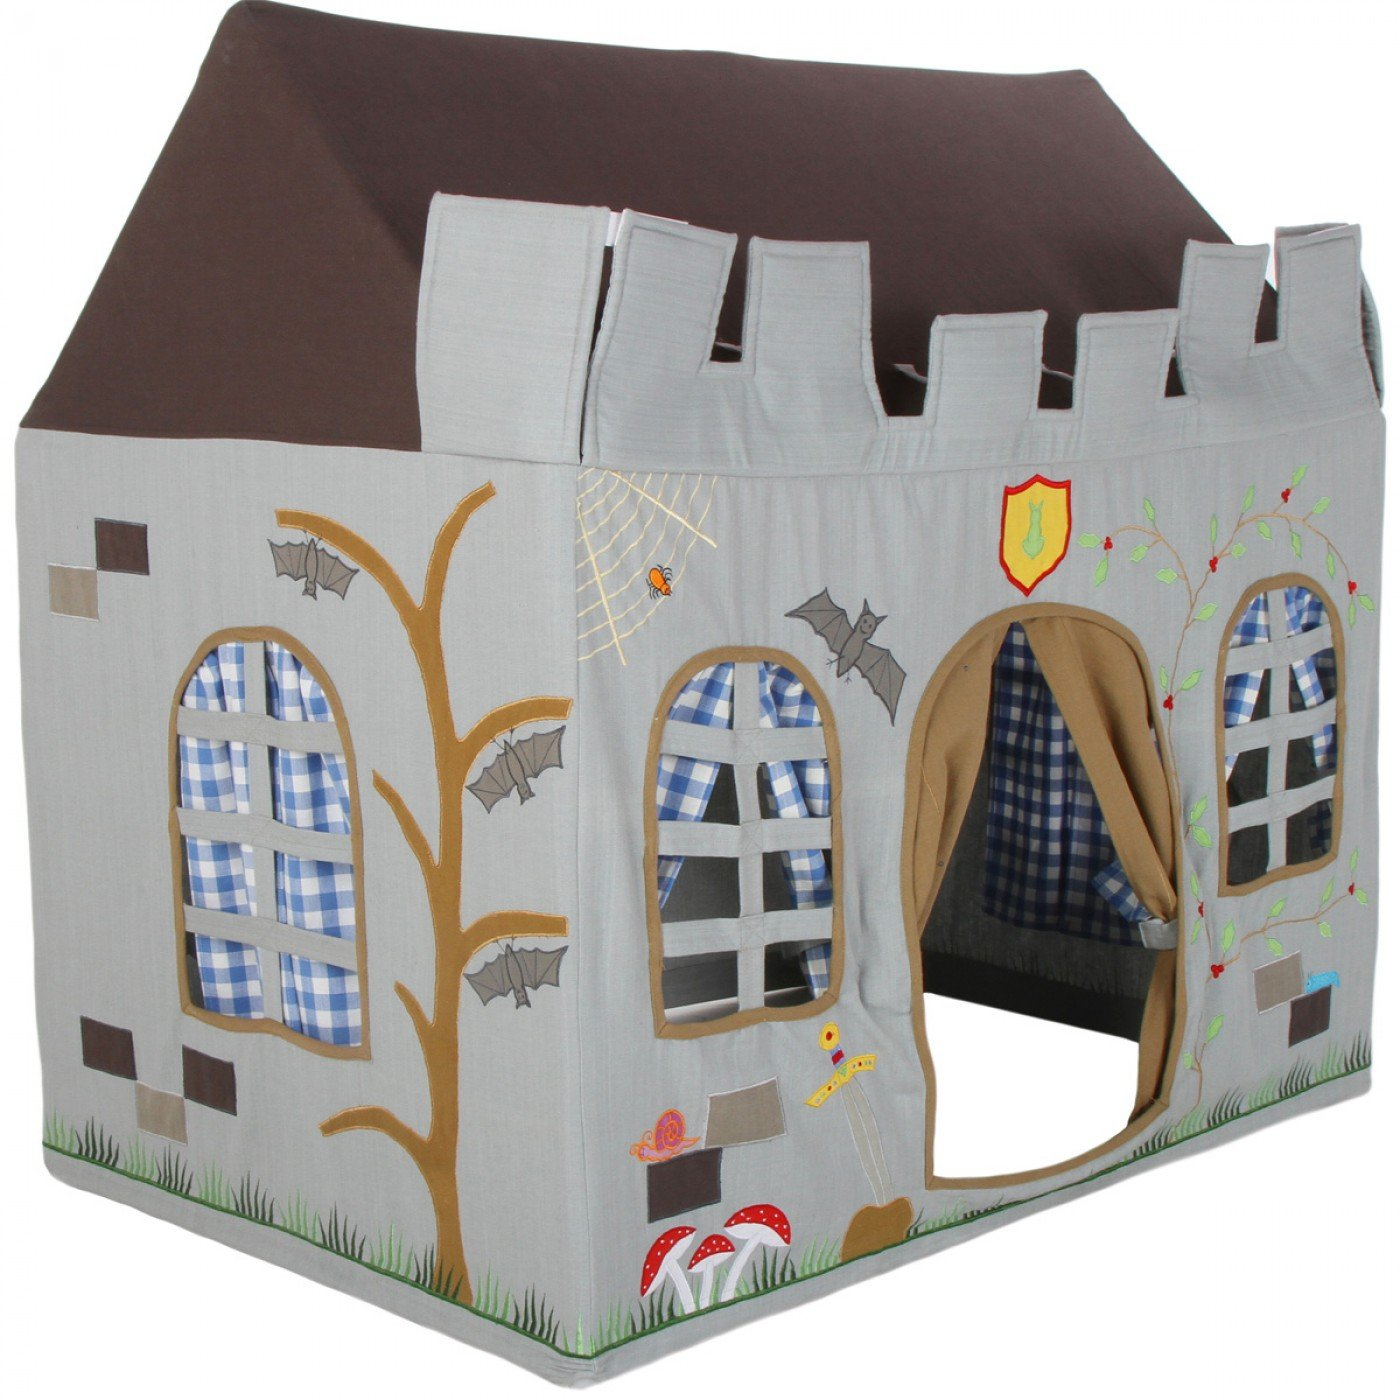 Knight's Castle Playhouse (Win Green – Spielzelt Klein) günstig bestellen